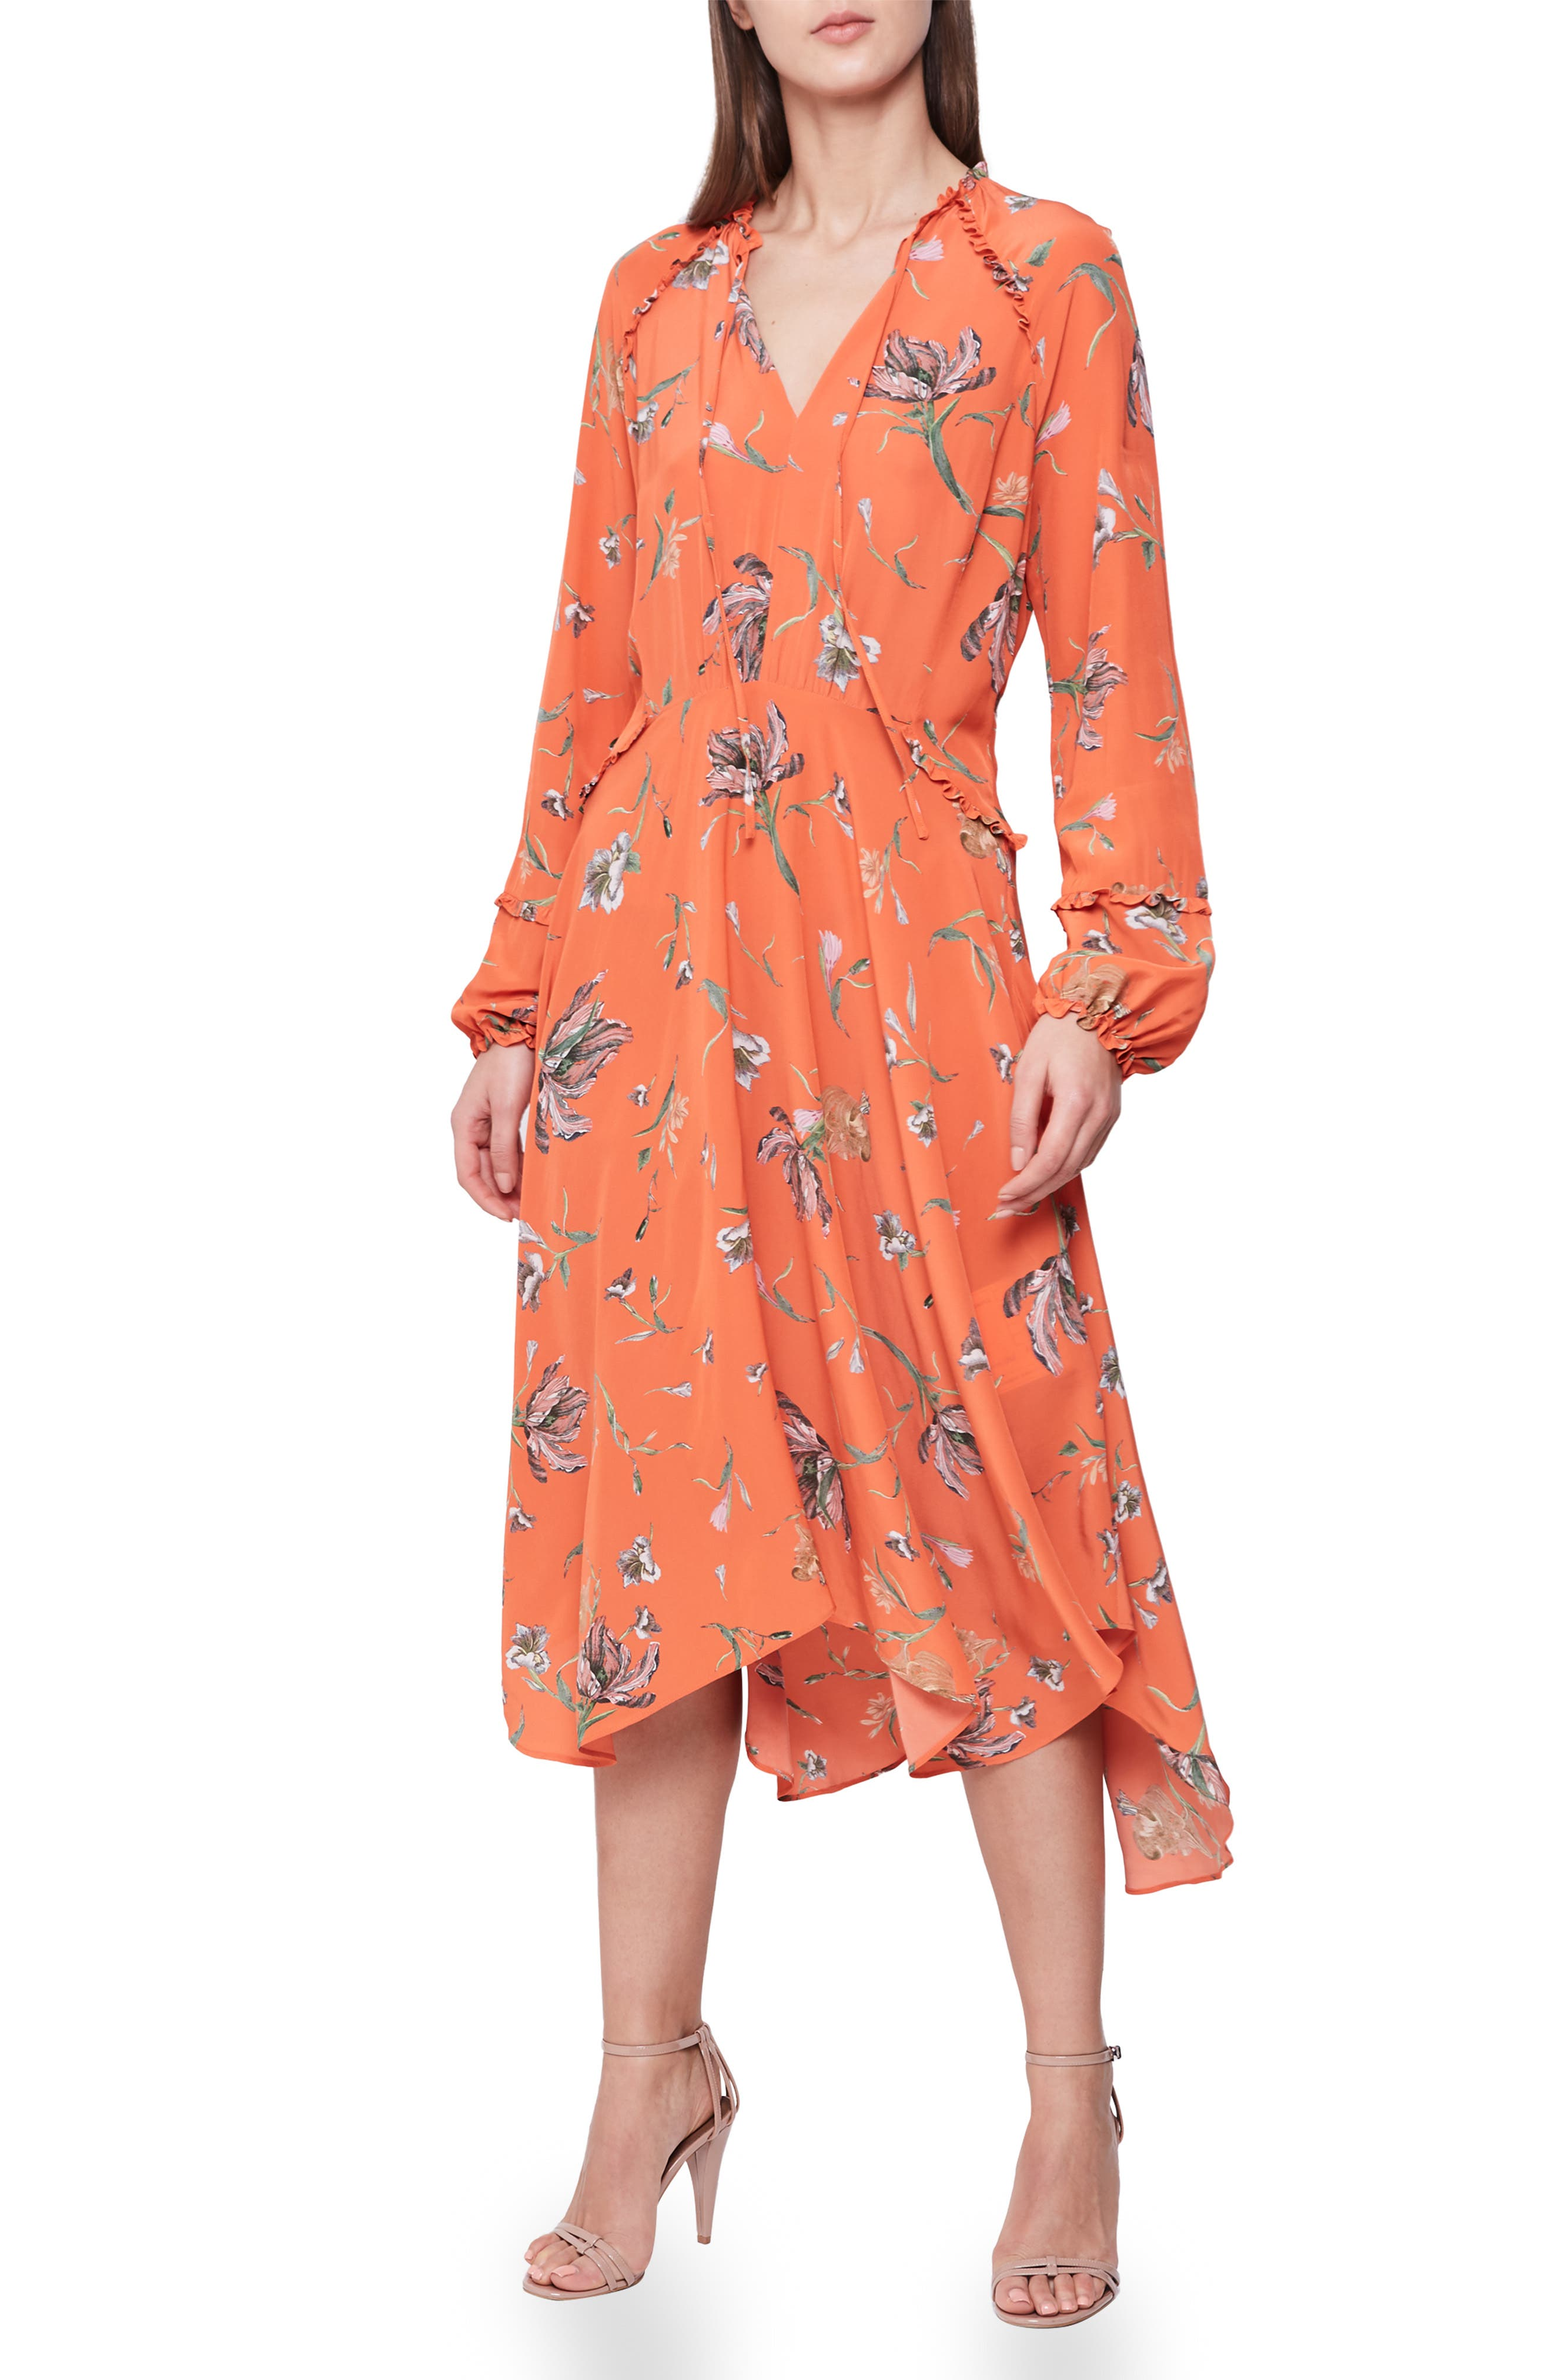 Reiss Bay Ruffle Detail Tie Neck Long Sleeve Floral Dress